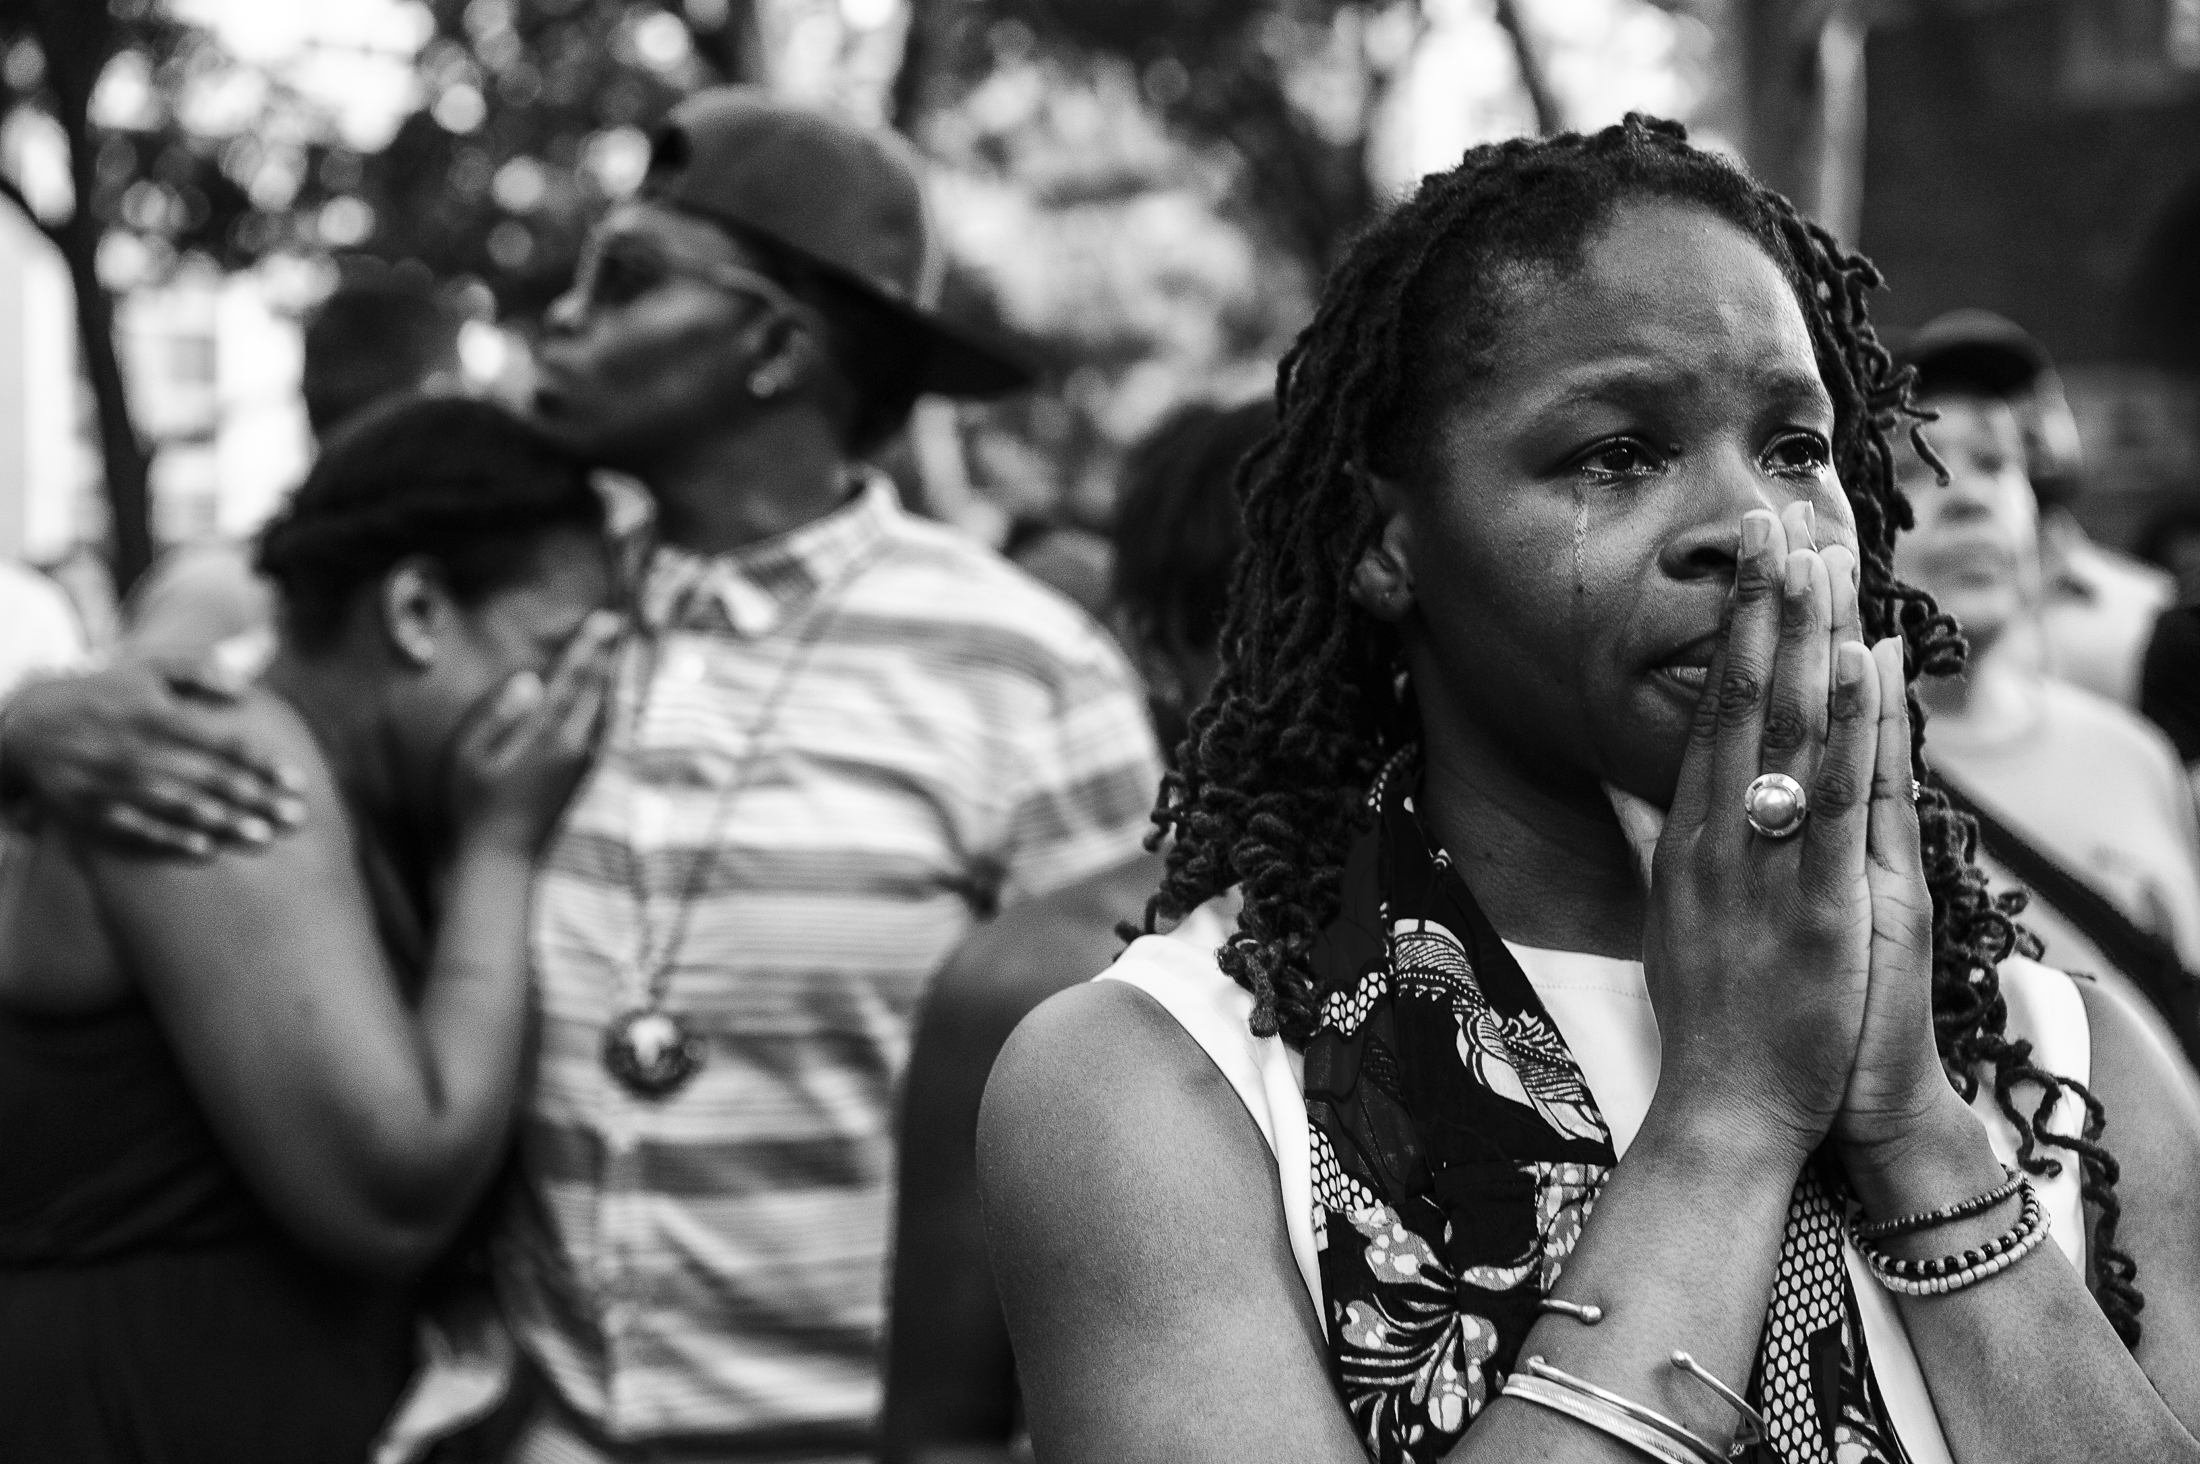 People mourn at a vigil for Islan Nettles at Jackie Robinson Park on Tuesday, Aug. 27, 2013 in New York, N.Y. Nettles was a transgender woman who was allegedly killed by Paris Wilson.